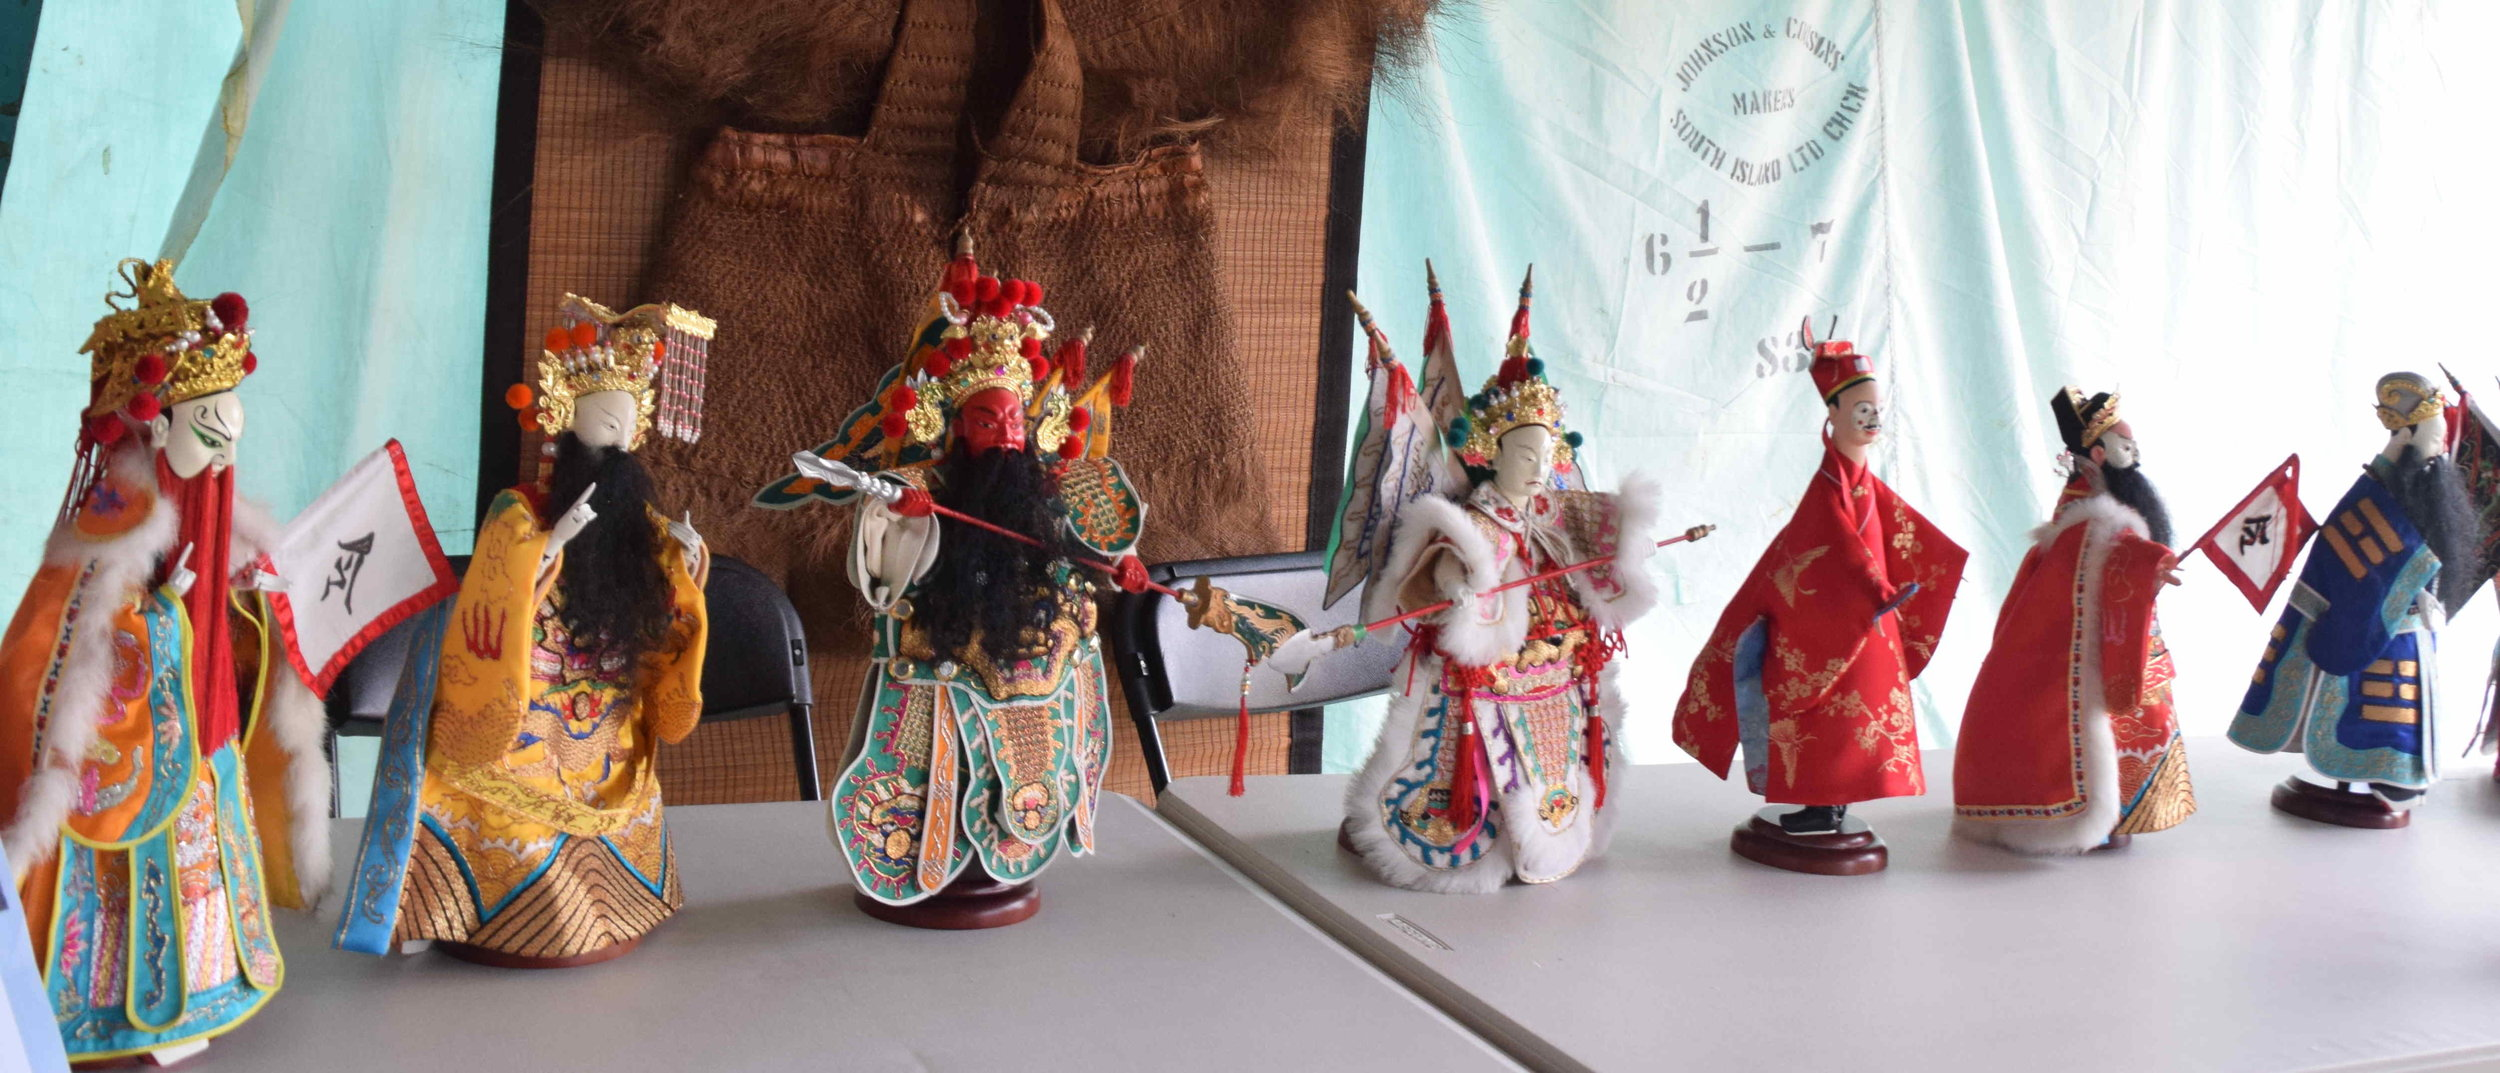 Taiwanese Hwa-Hsin Society NZ's puppetry display